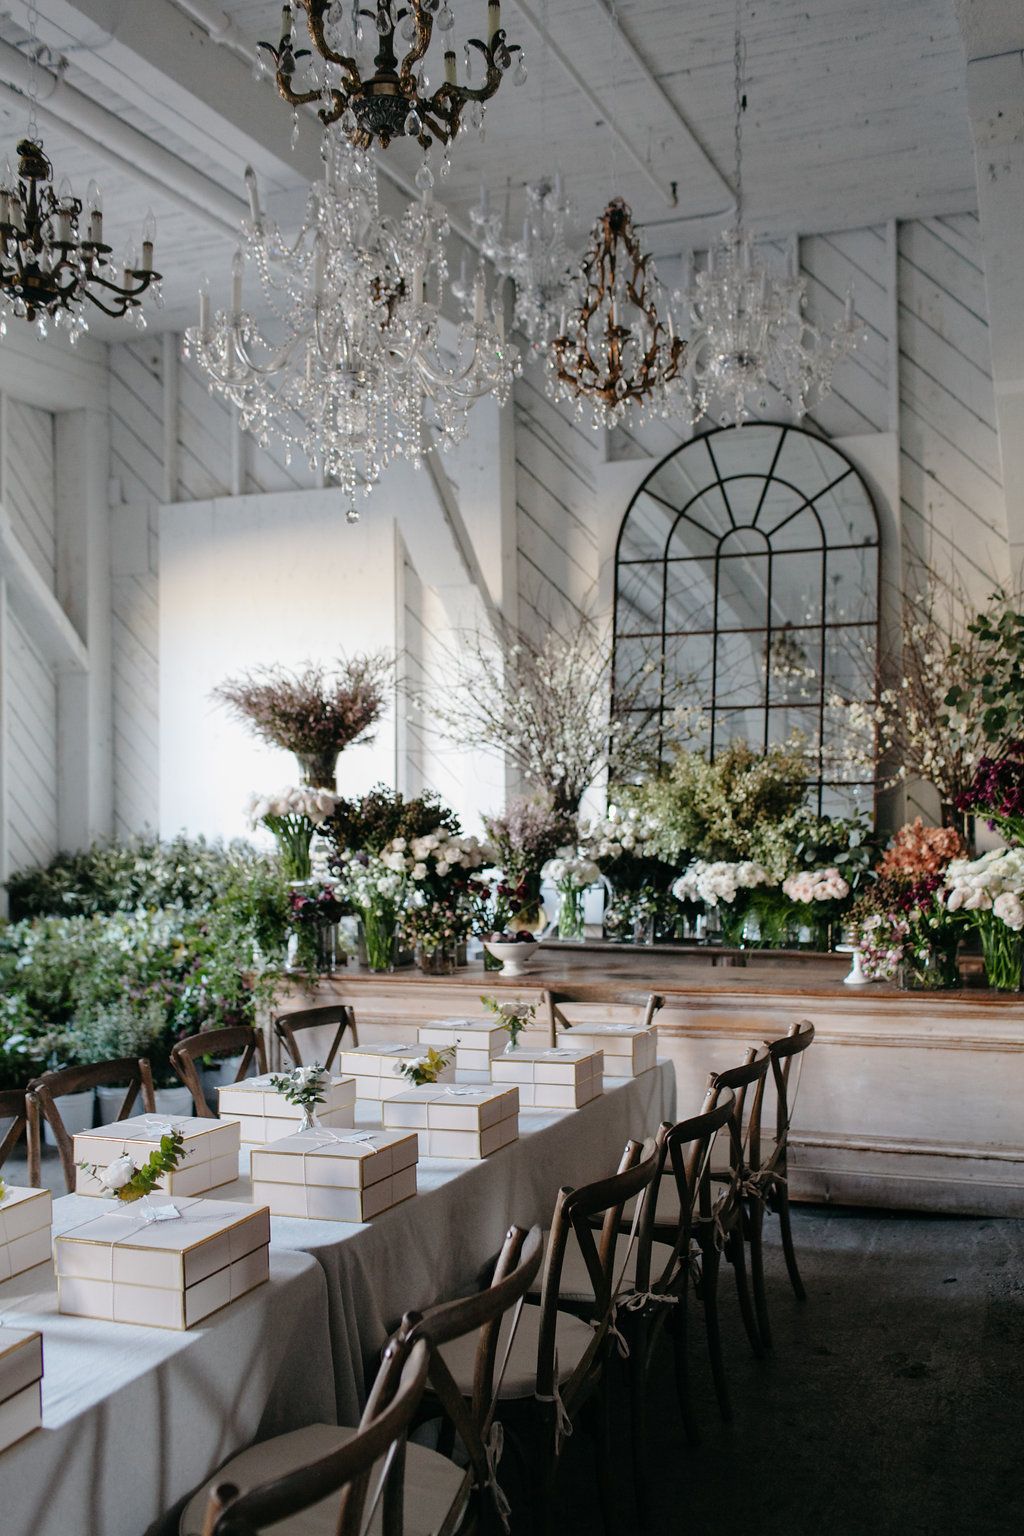 Wedding Florist Workshop - Sinclair & Moore